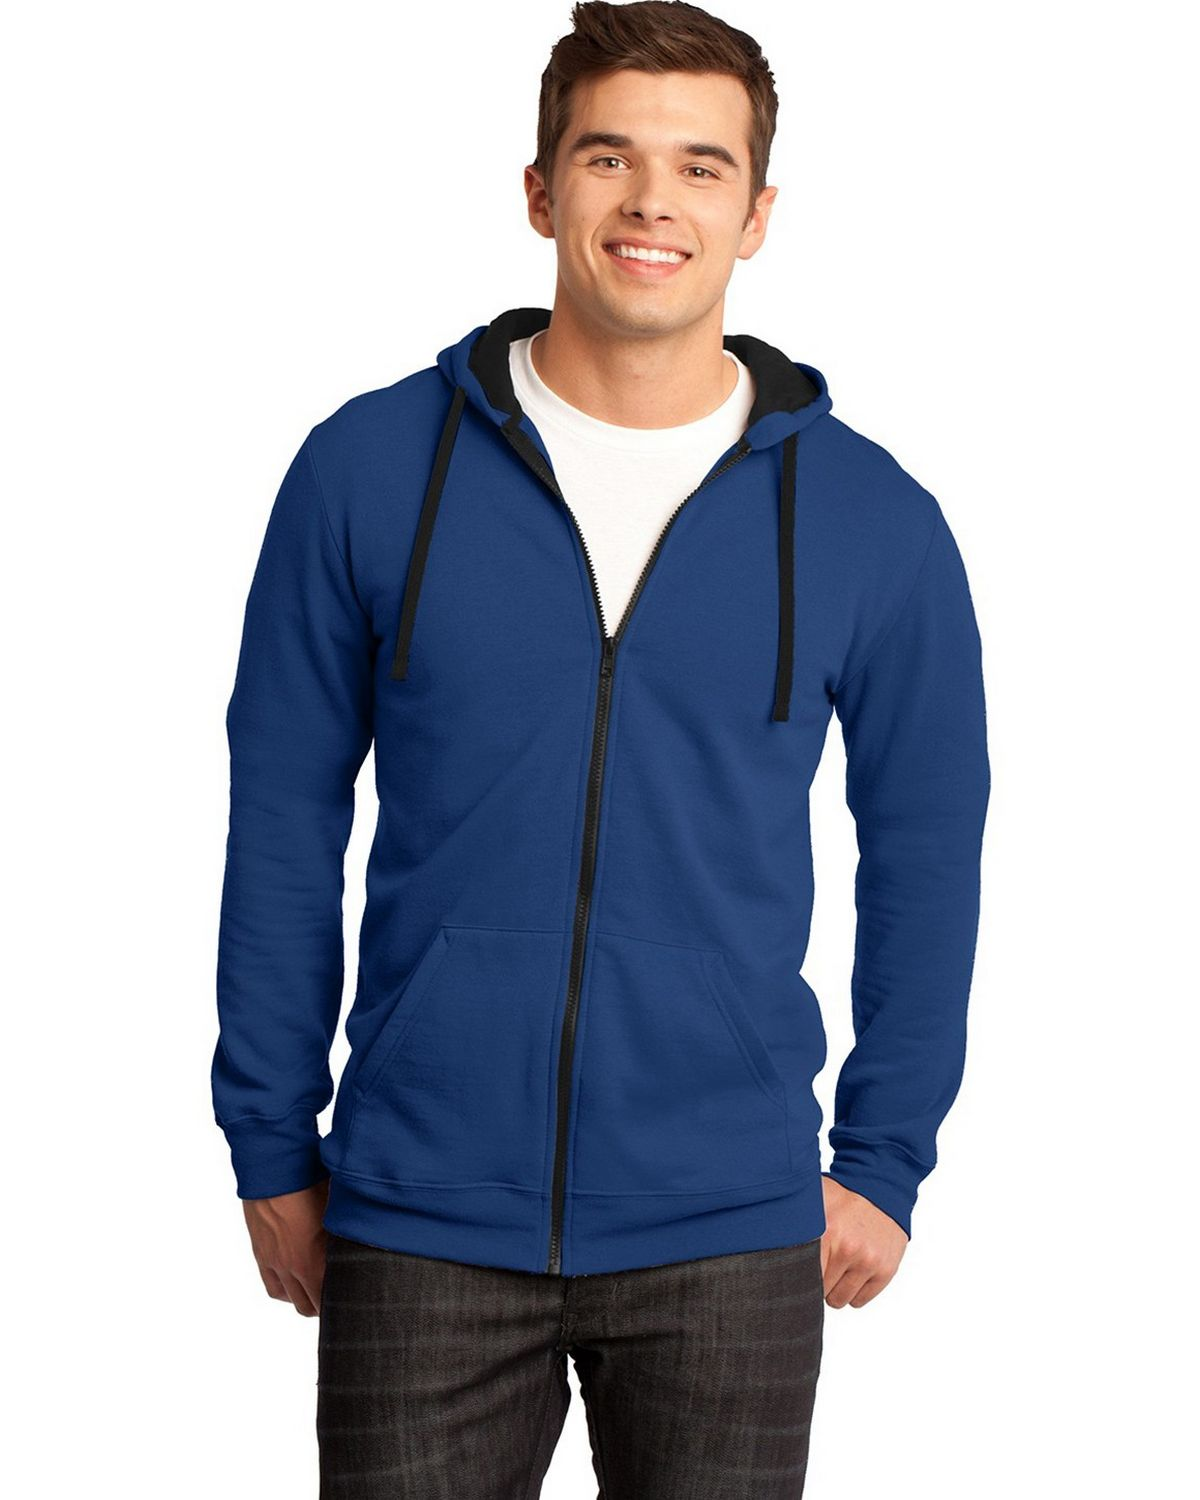 District DT800 Young Mens The Concert Fleece Full-Zip Hoodie